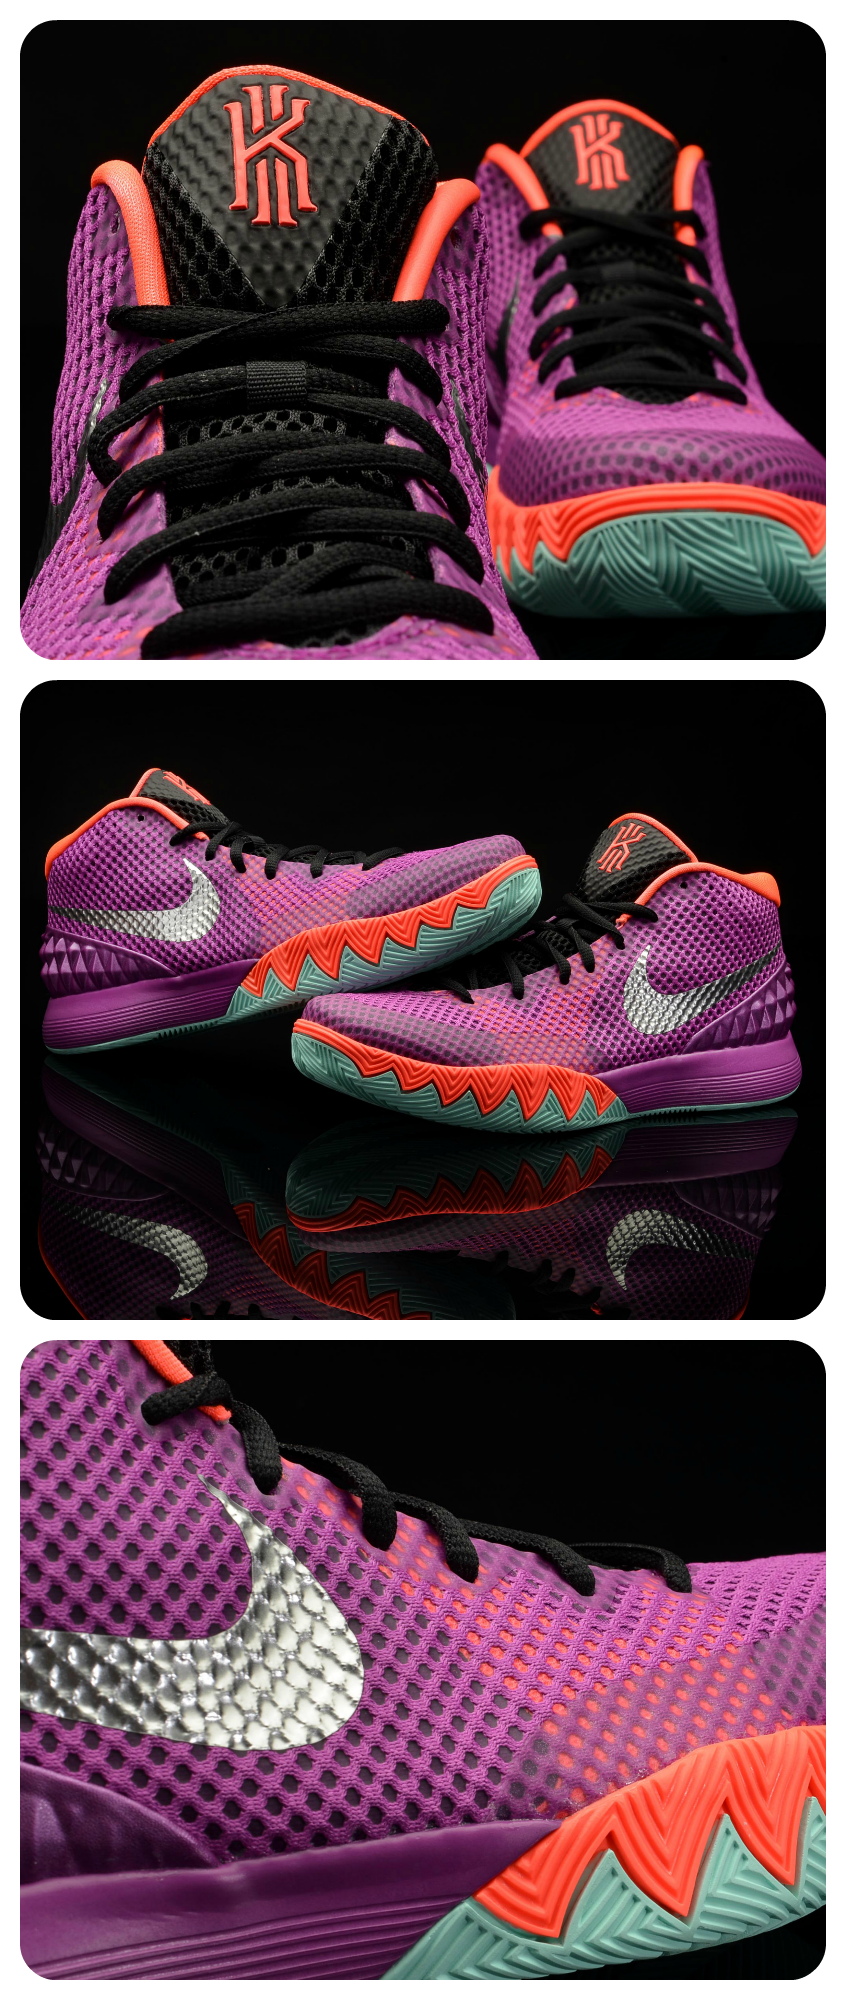 cee554120eb6 Nike Kyrie 1 Easter edition.  Basketball  Shoes